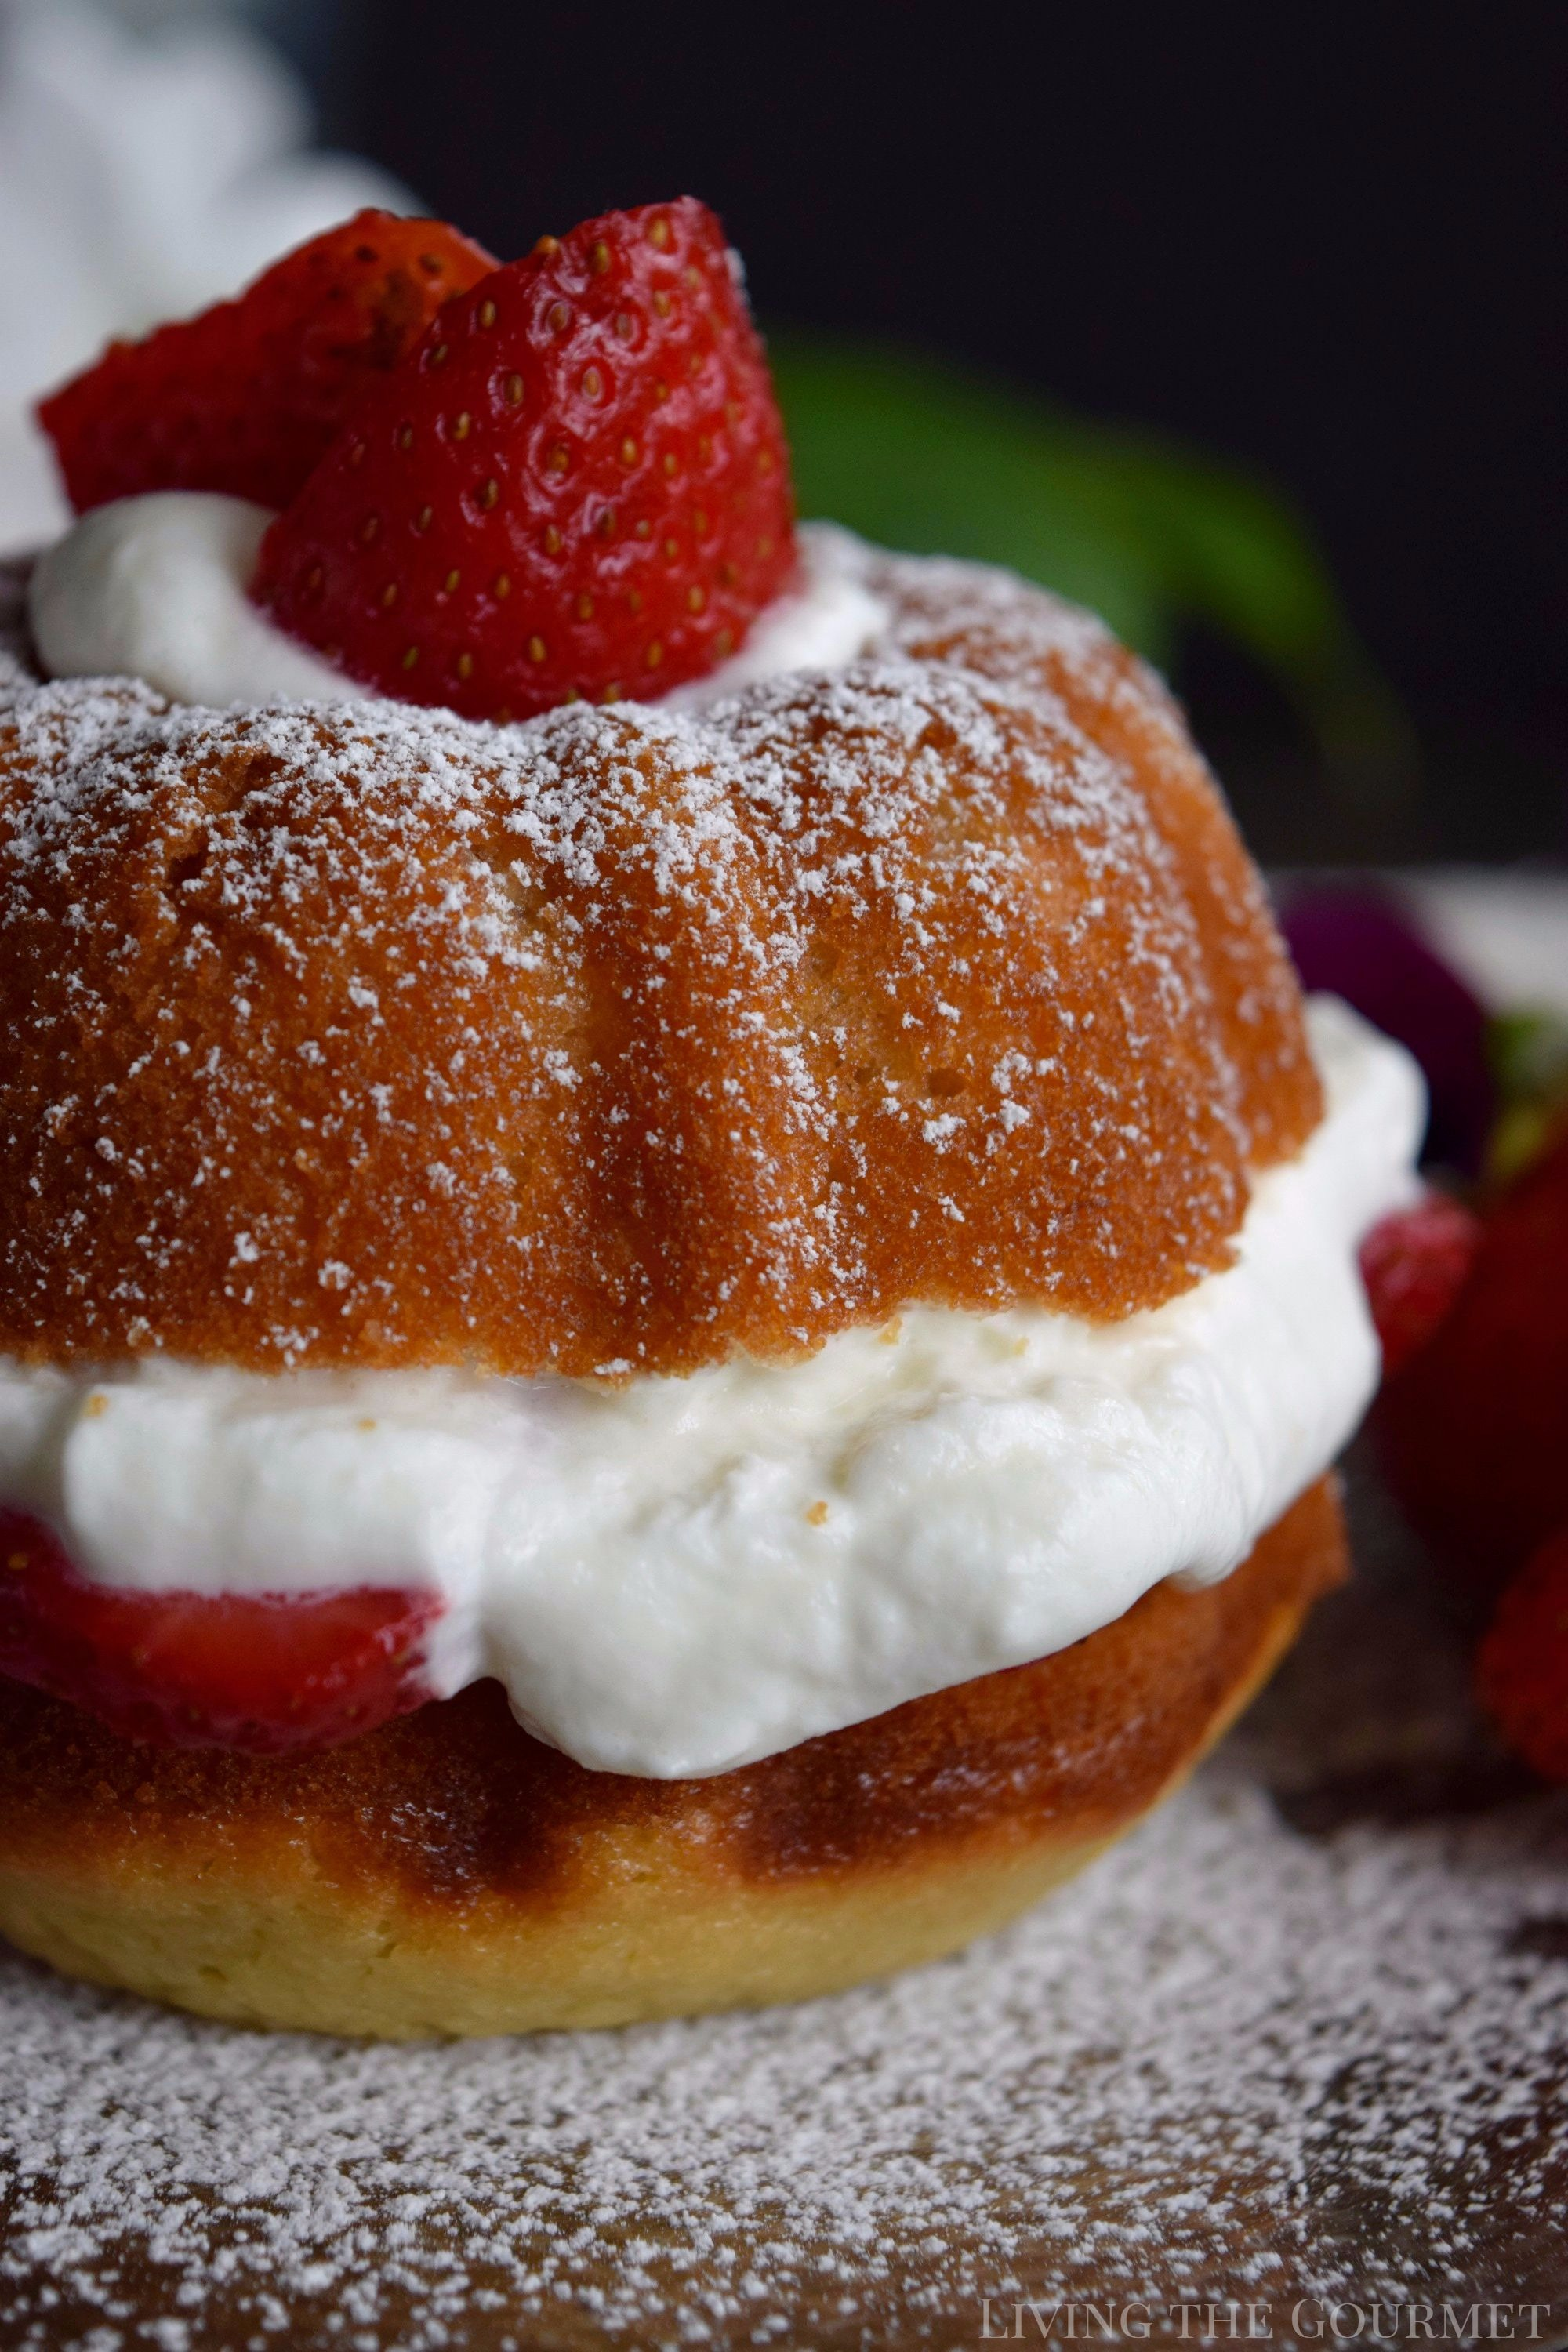 Living the Gourmet: Enjoy the final moments of summer with these Strawberries and Cream Naked Bundt Cakes. Fresh cream and sliced strawberries are layered between a moist, vanilla strawberry cake. #BundtBakers